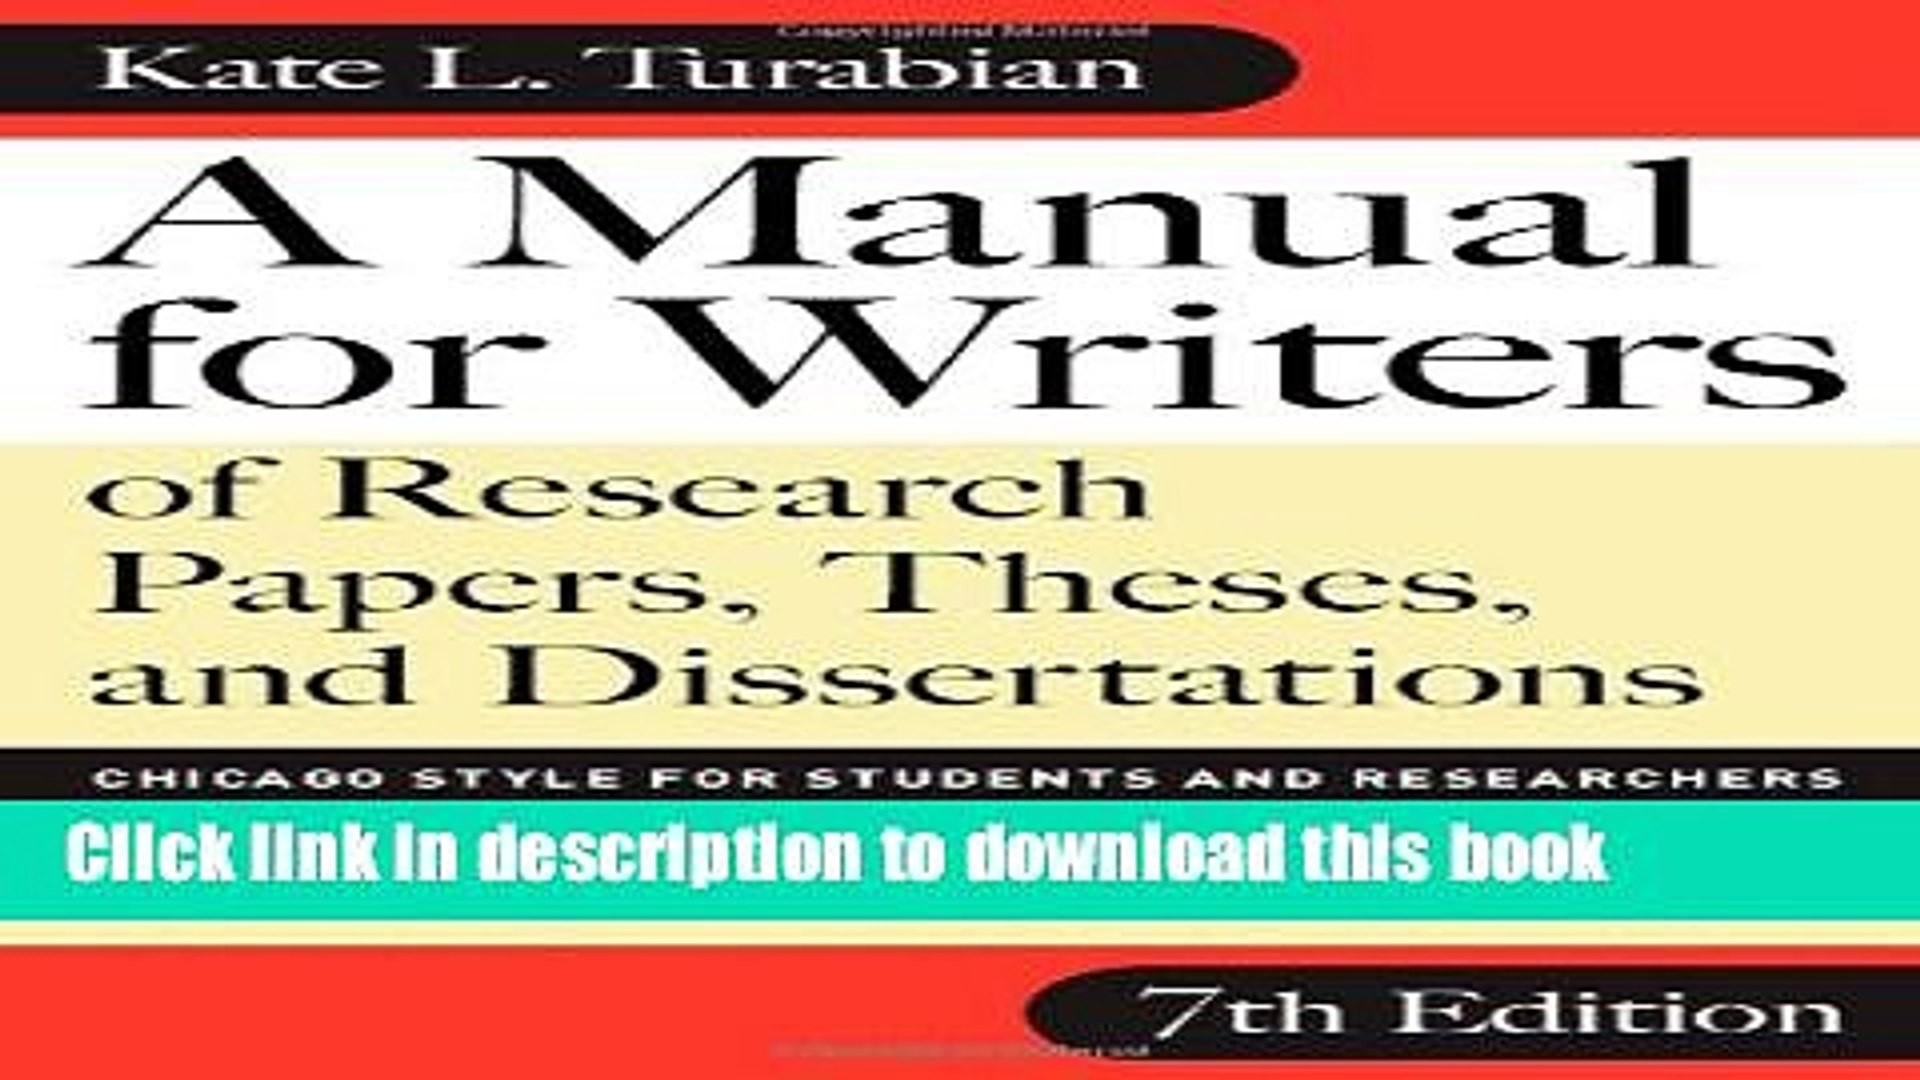 003 Research Paper Manual For Writers Of Papers Theses And Dissertations 7th Edition X1080 Sensational A 1920